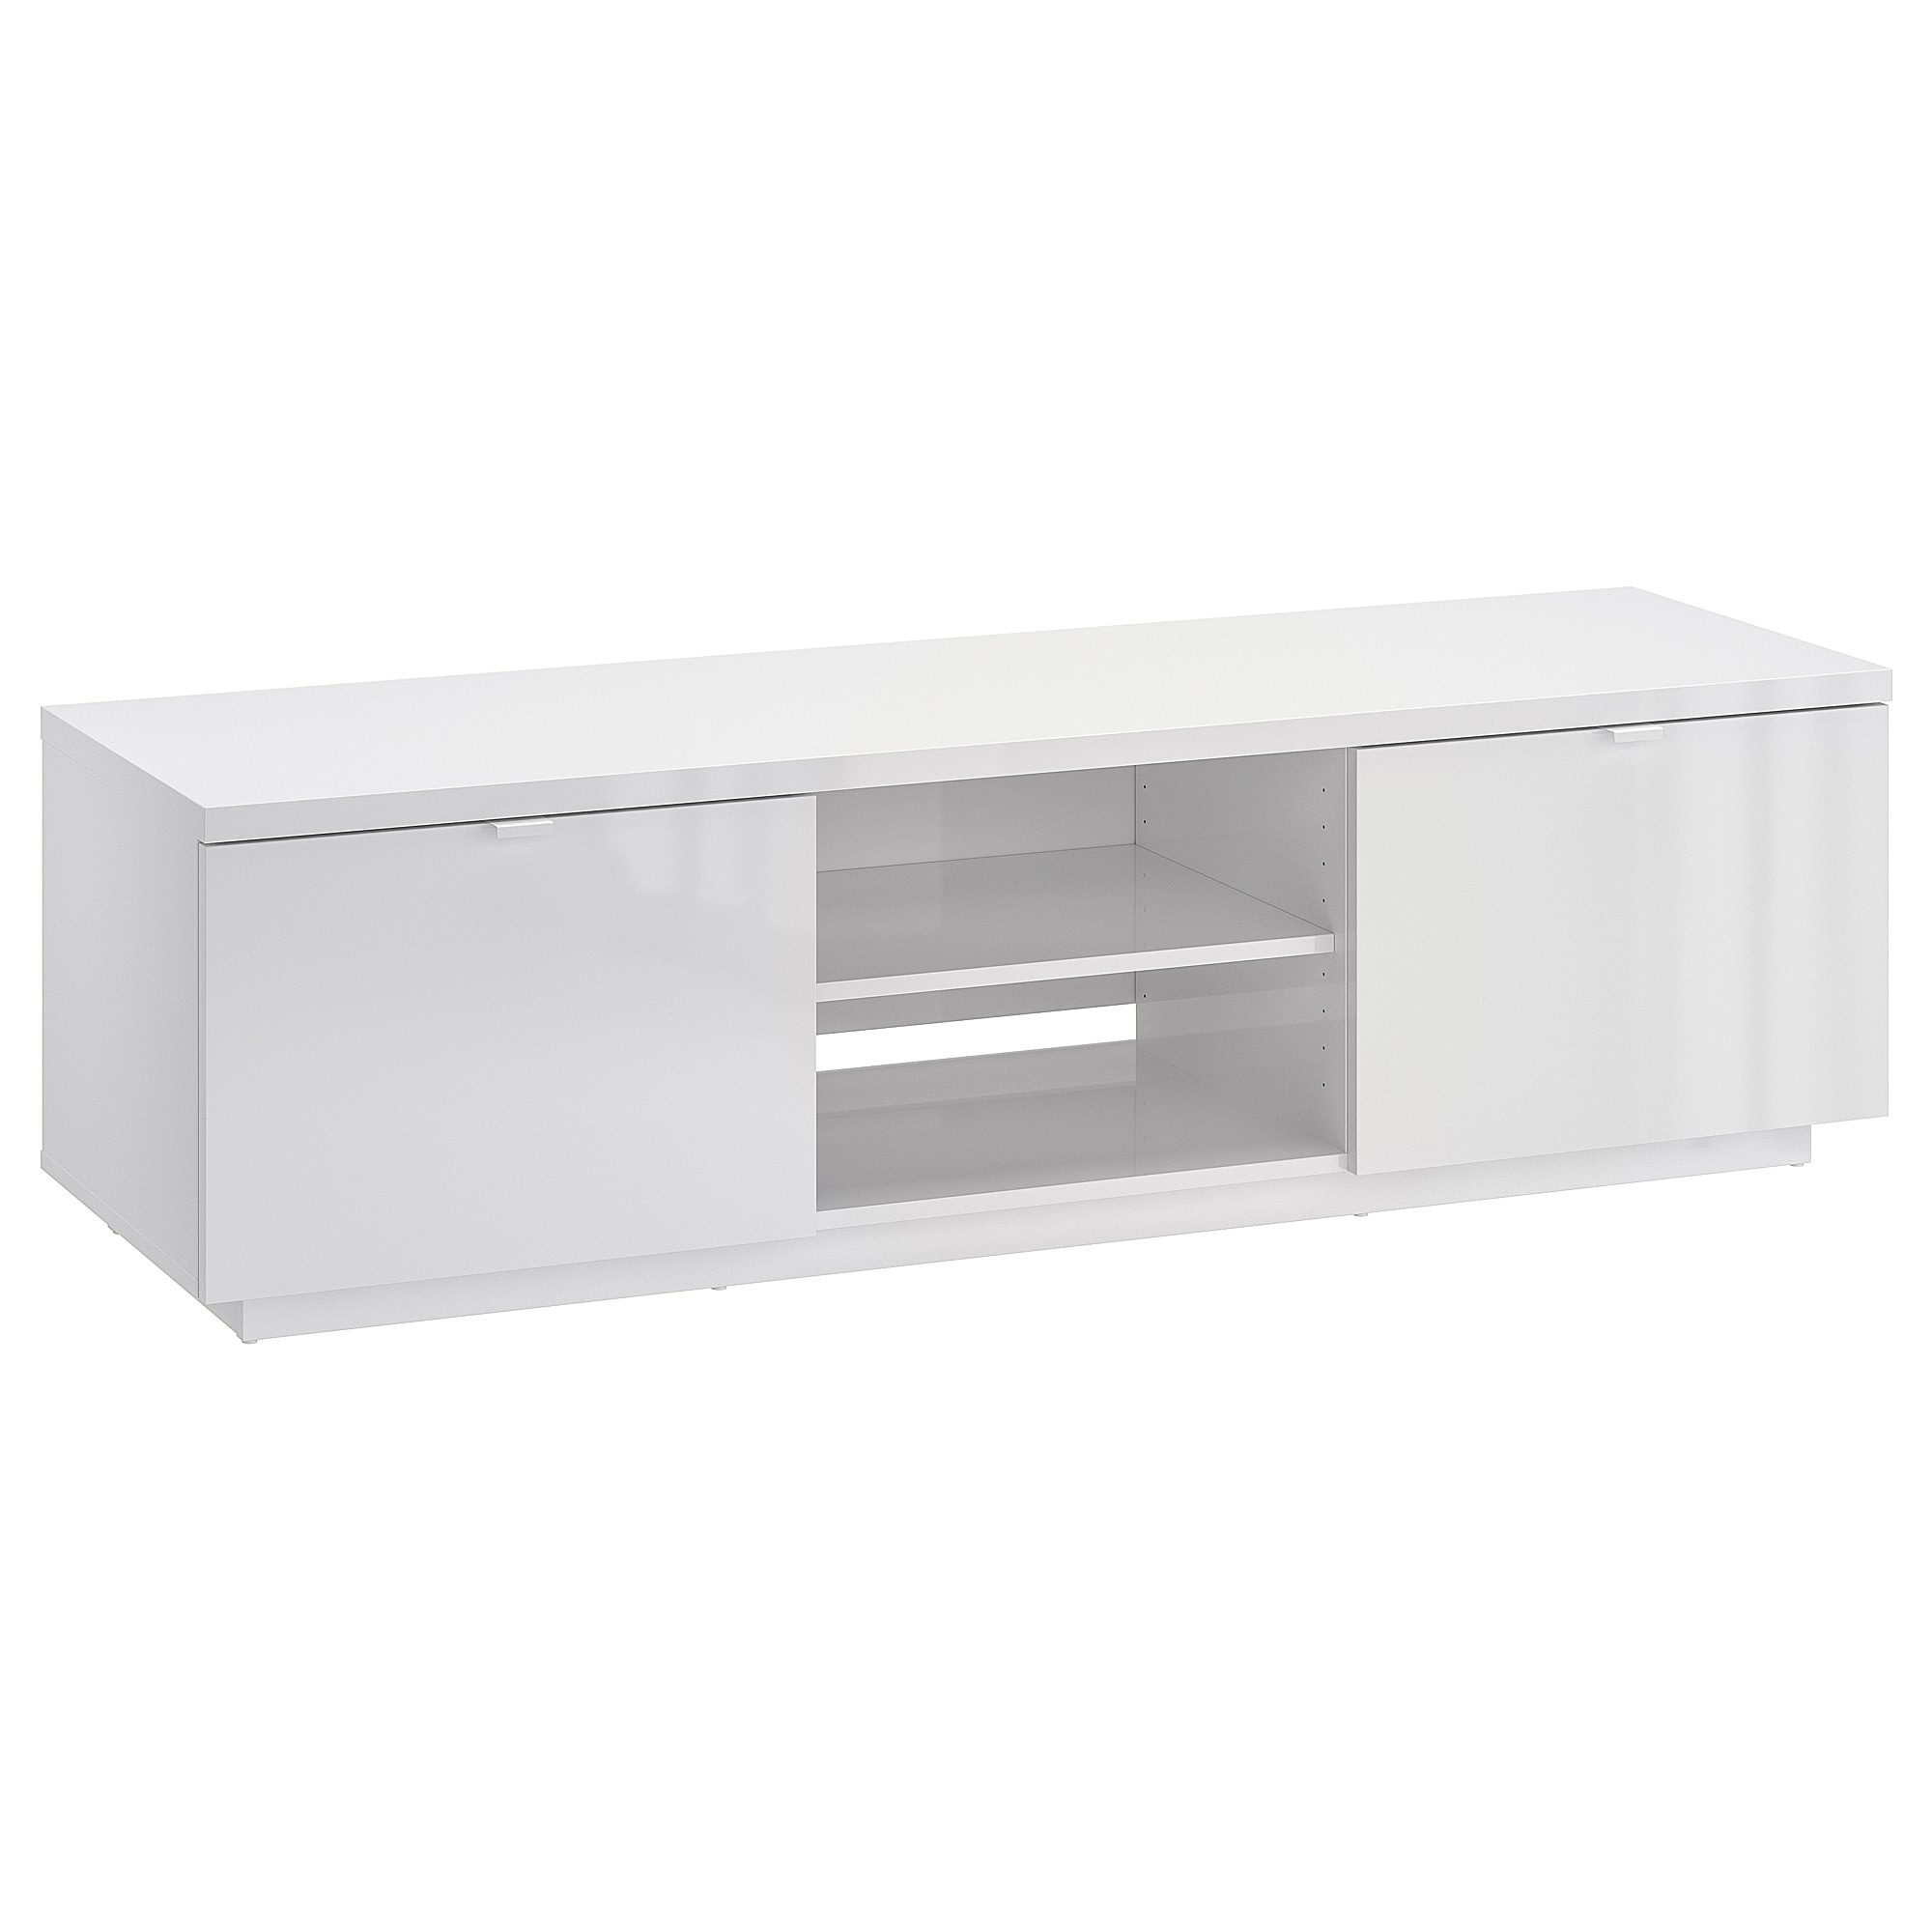 Current Byås Tv Bench High Gloss White 160 X 42 X 45 Cm – Ikea In Ikea Tv Console Tables (Gallery 9 of 20)